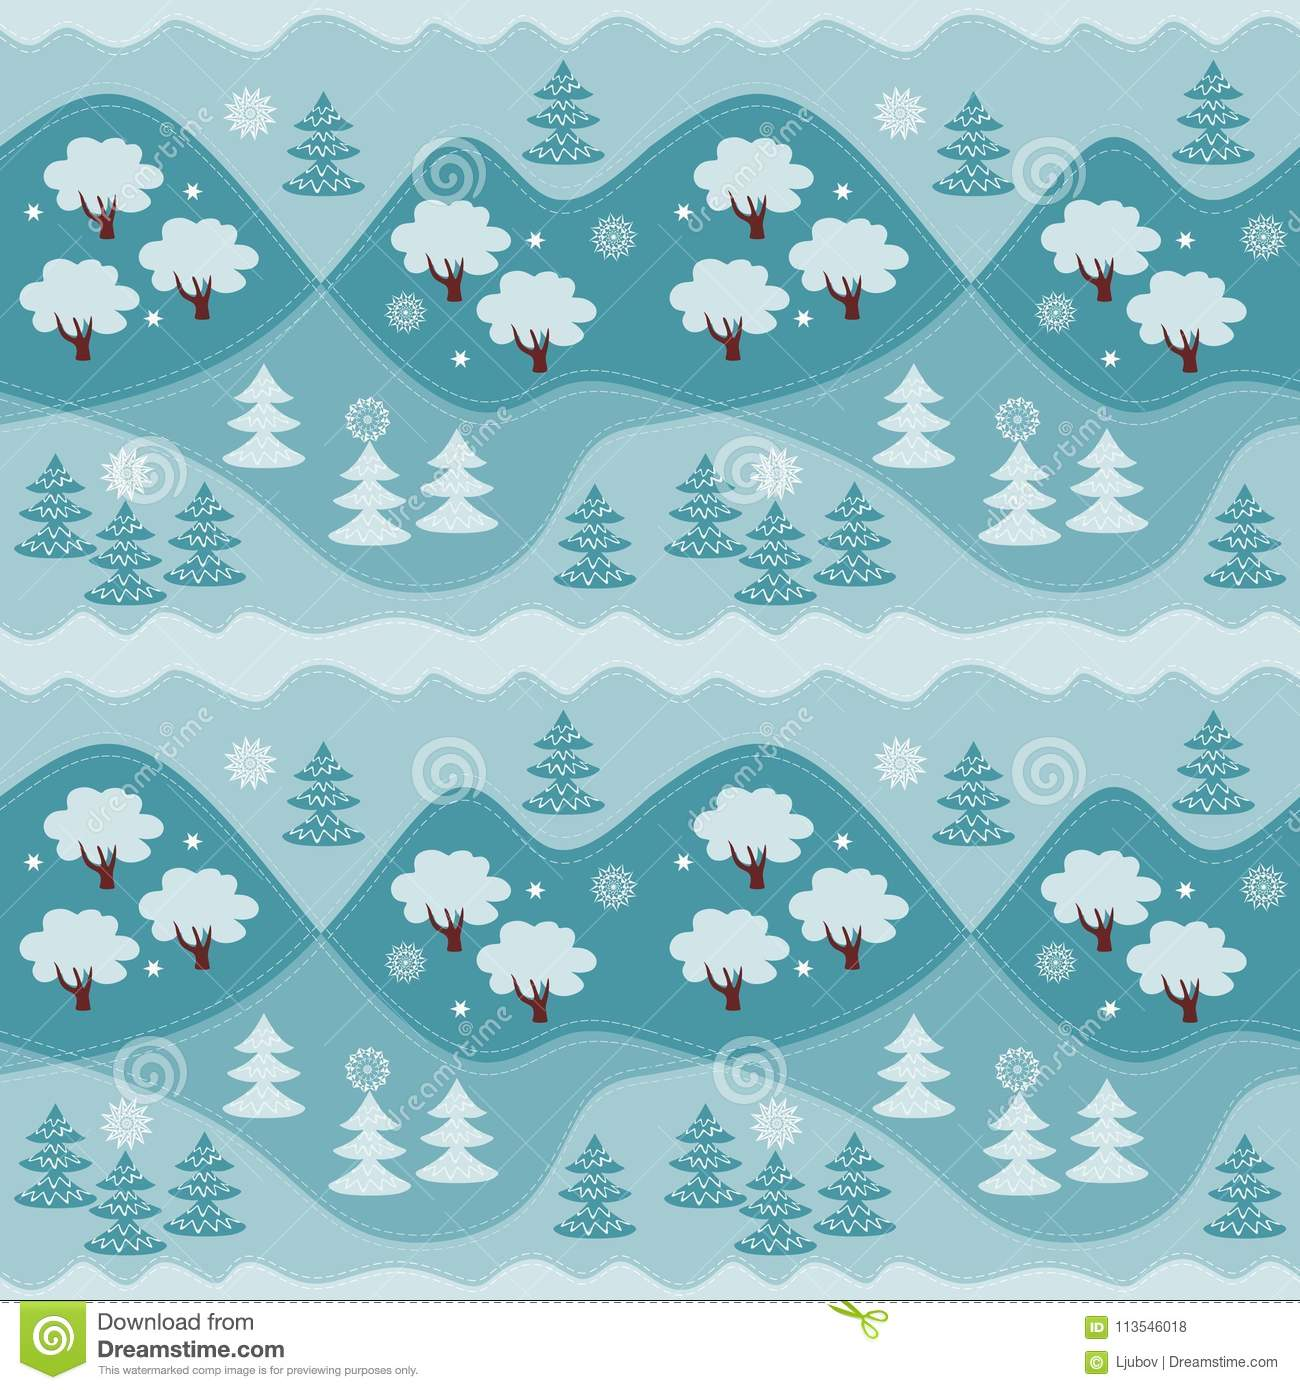 Winter endless pattern with forest. Print for fabric, wallpaper, wrapping paper. Vector illustration. Woodland.